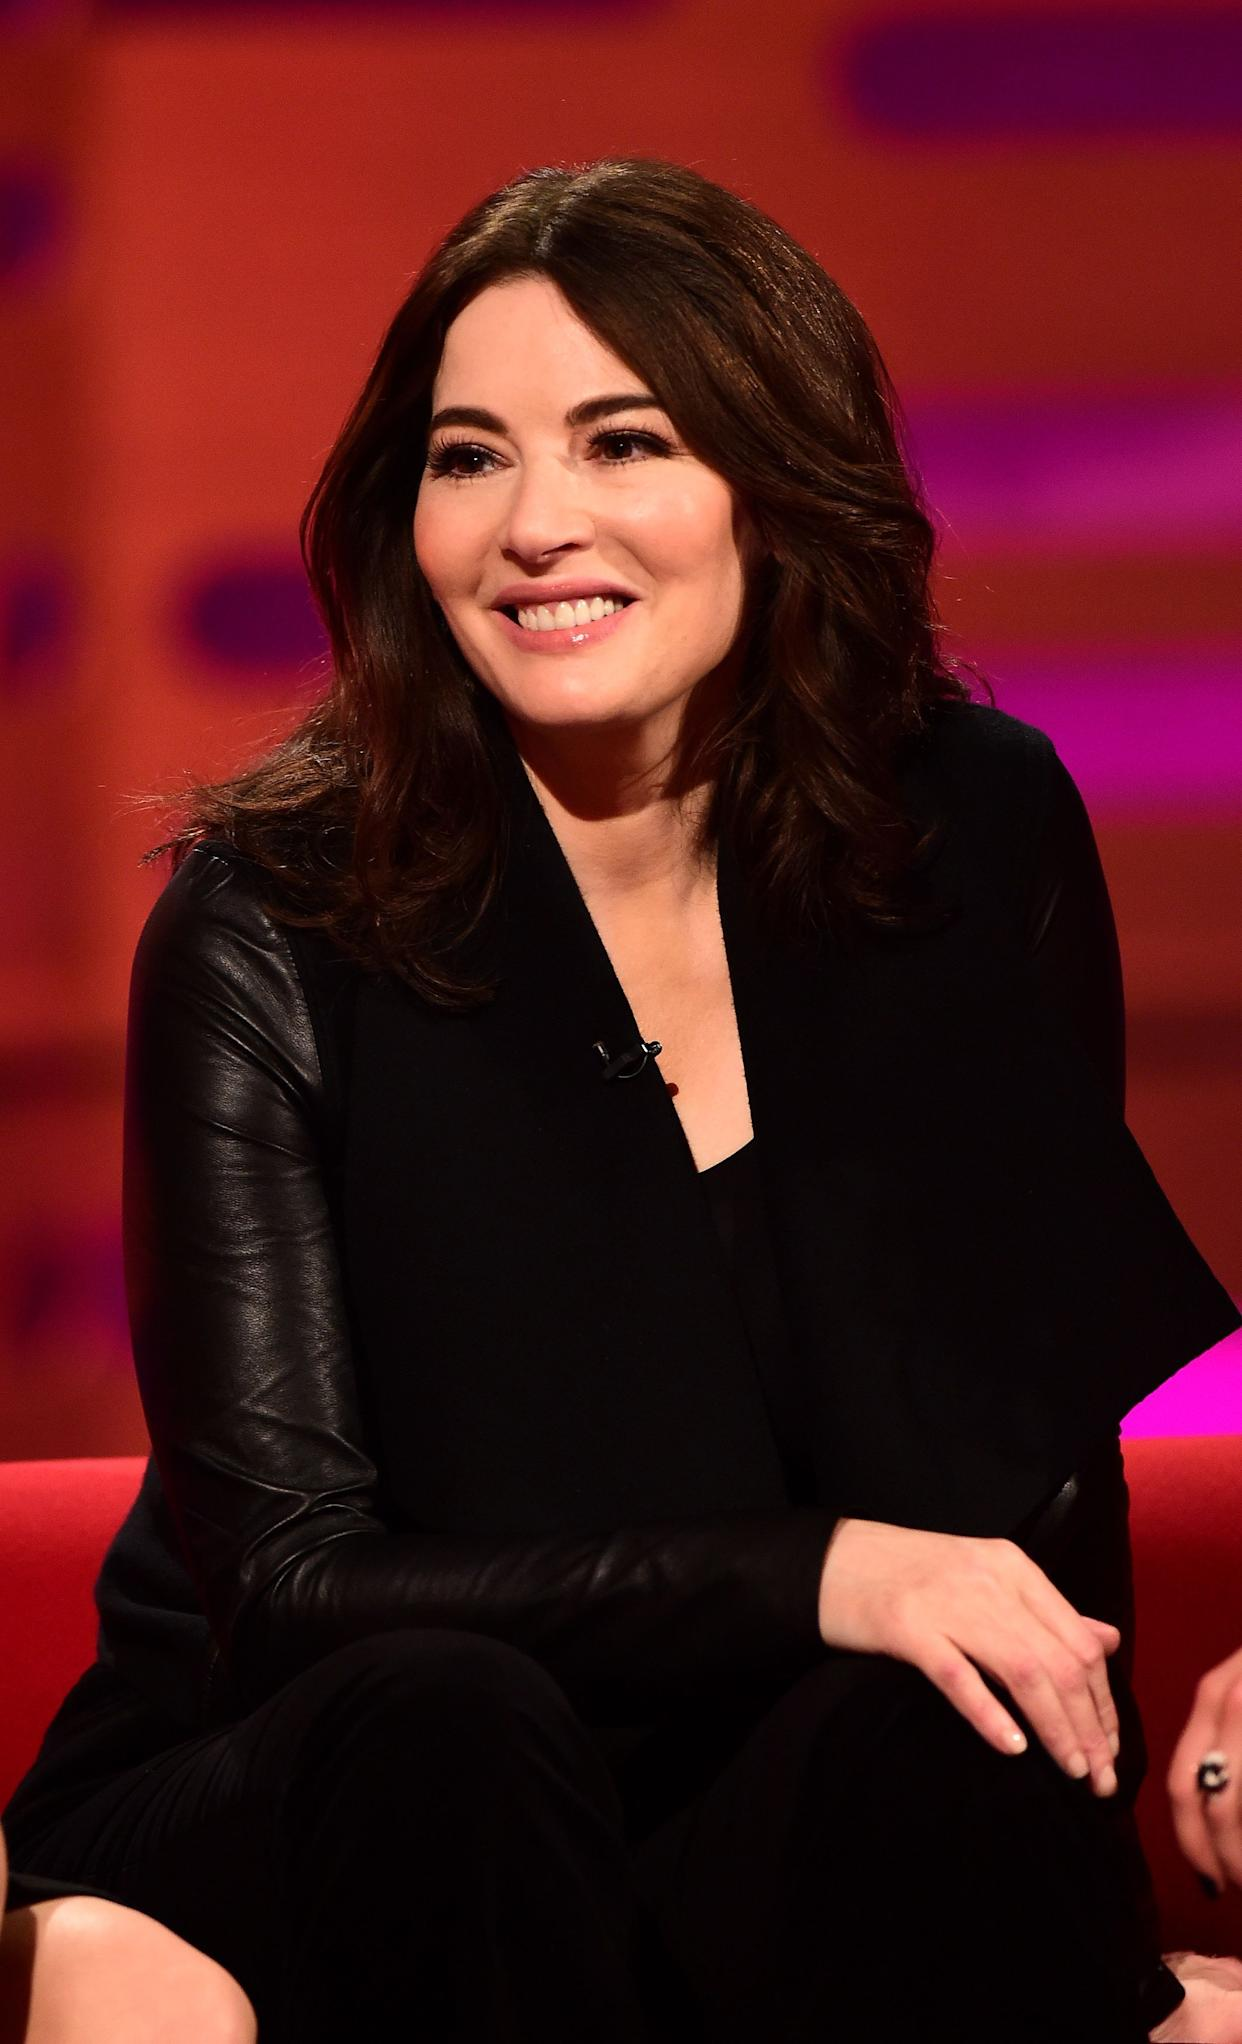 Nigella Lawson during filming of the Graham Norton Show at The London Studios, south London, to be aired on BBC One on Friday evening.